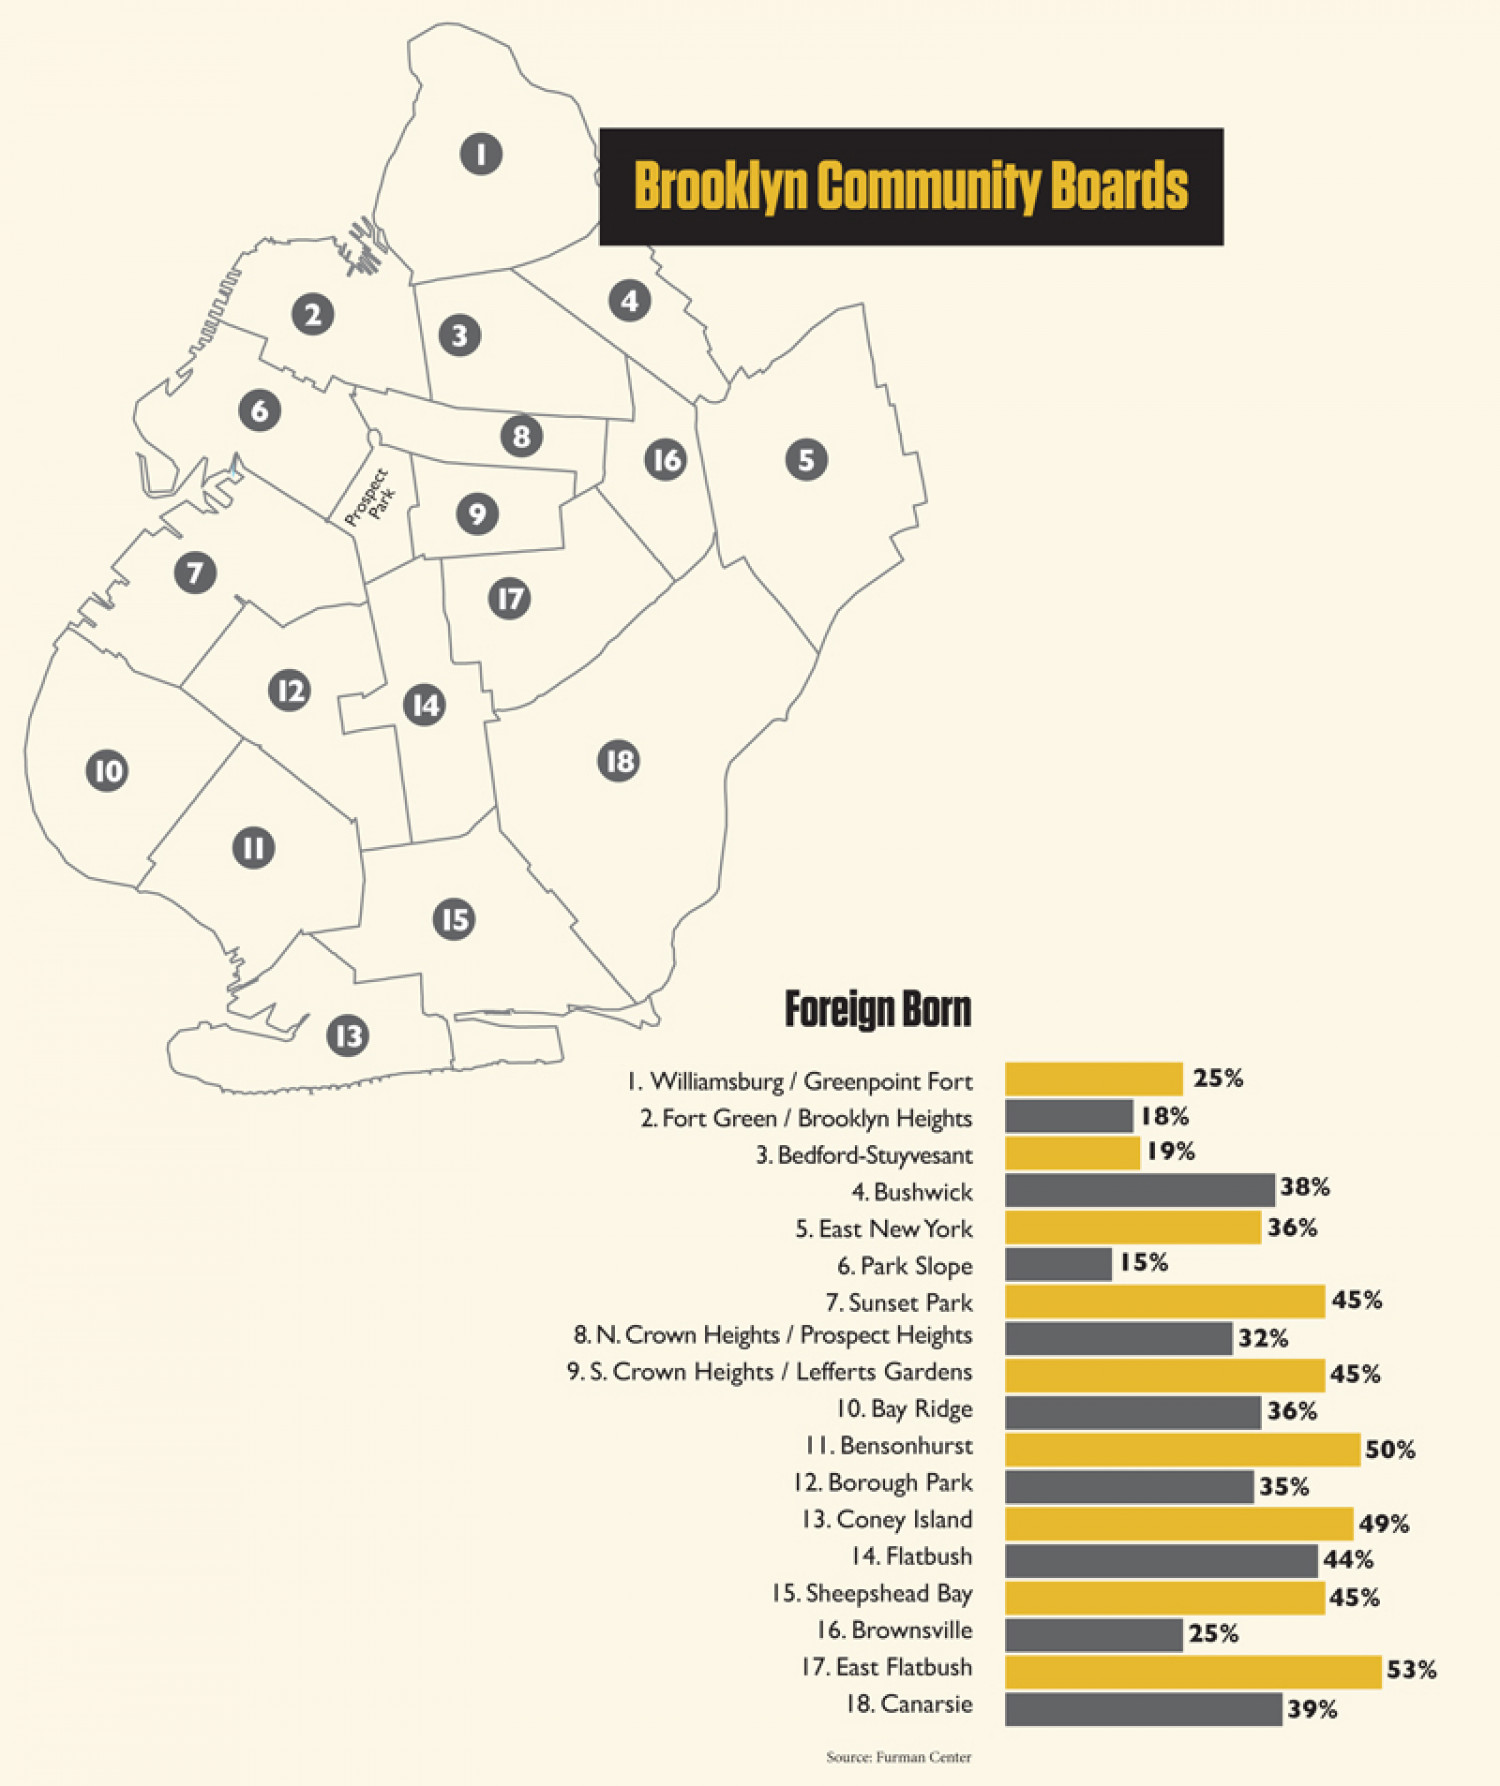 Brooklyn, New York: Foreign Born v. Native American Infographic